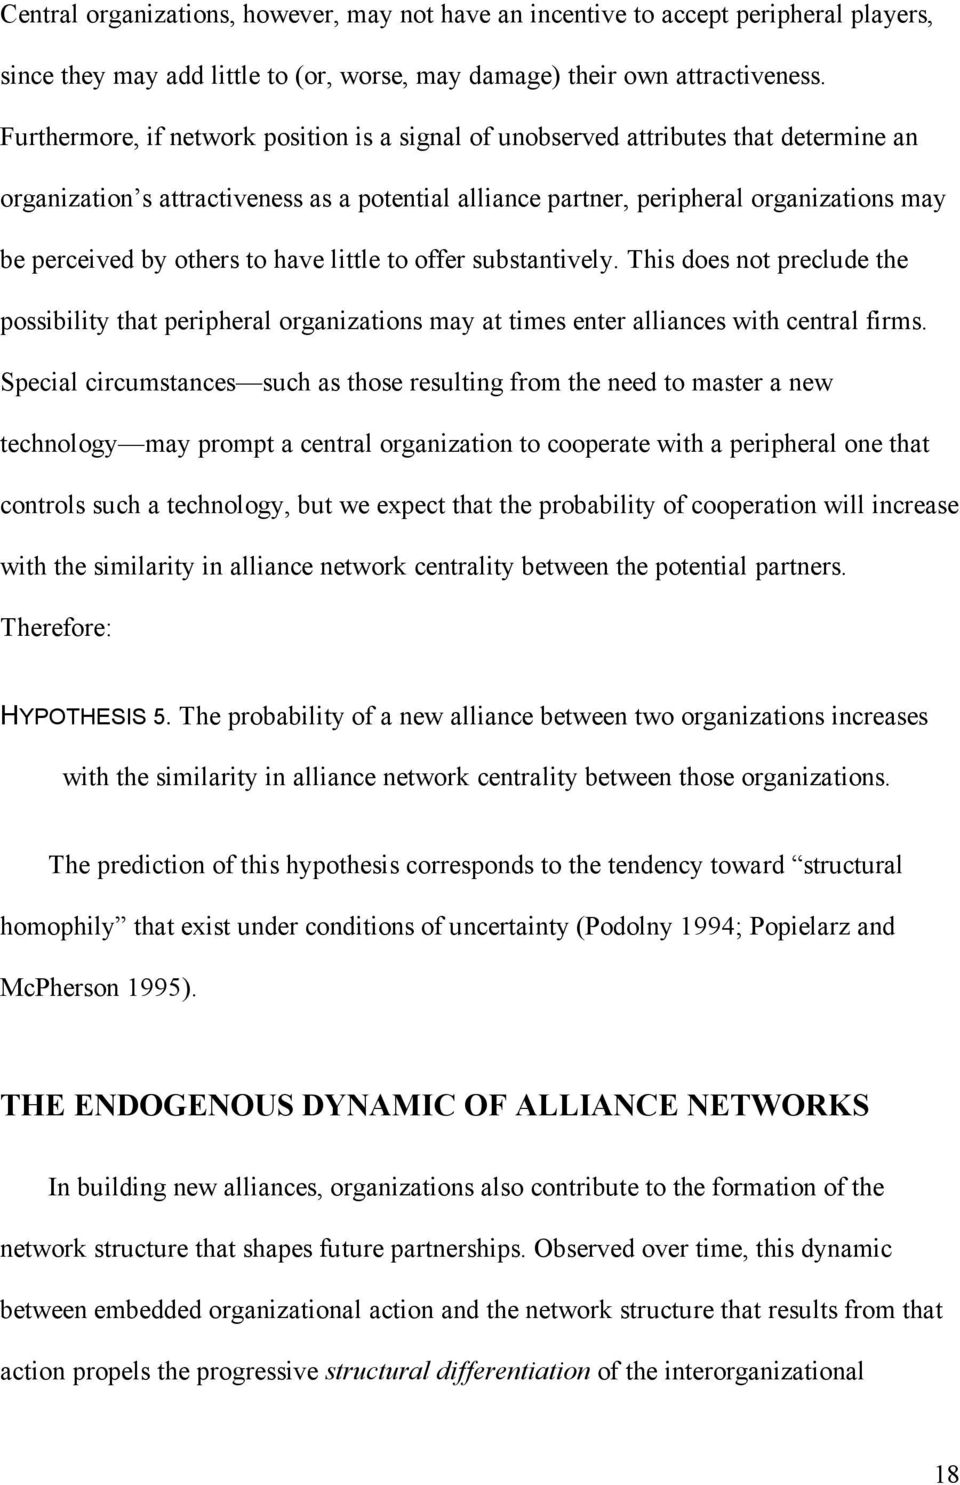 others to have little to offer substantively. This does not preclude the possibility that peripheral organizations may at times enter alliances with central firms.